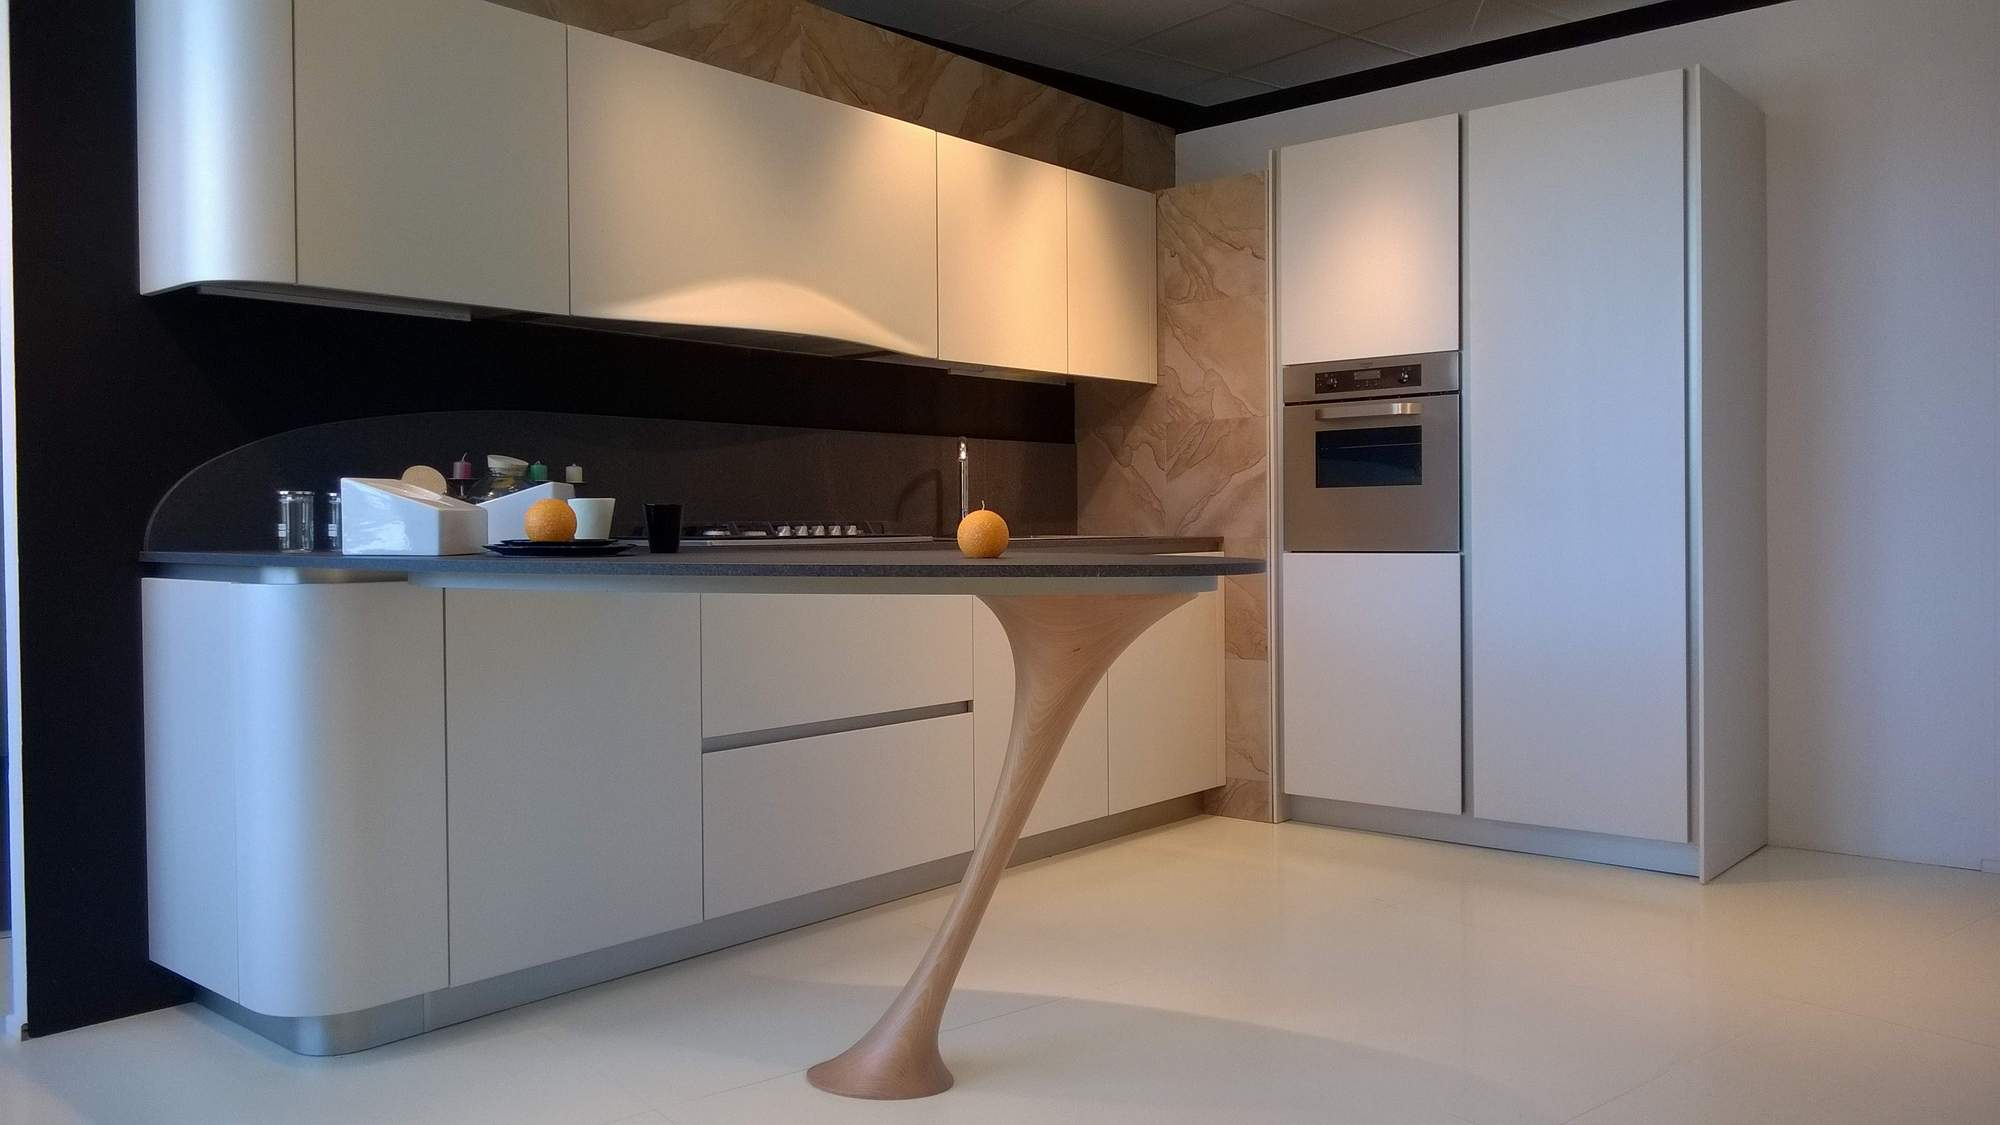 Cucine Snaidero Outlet Ideas - harrop.us - harrop.us